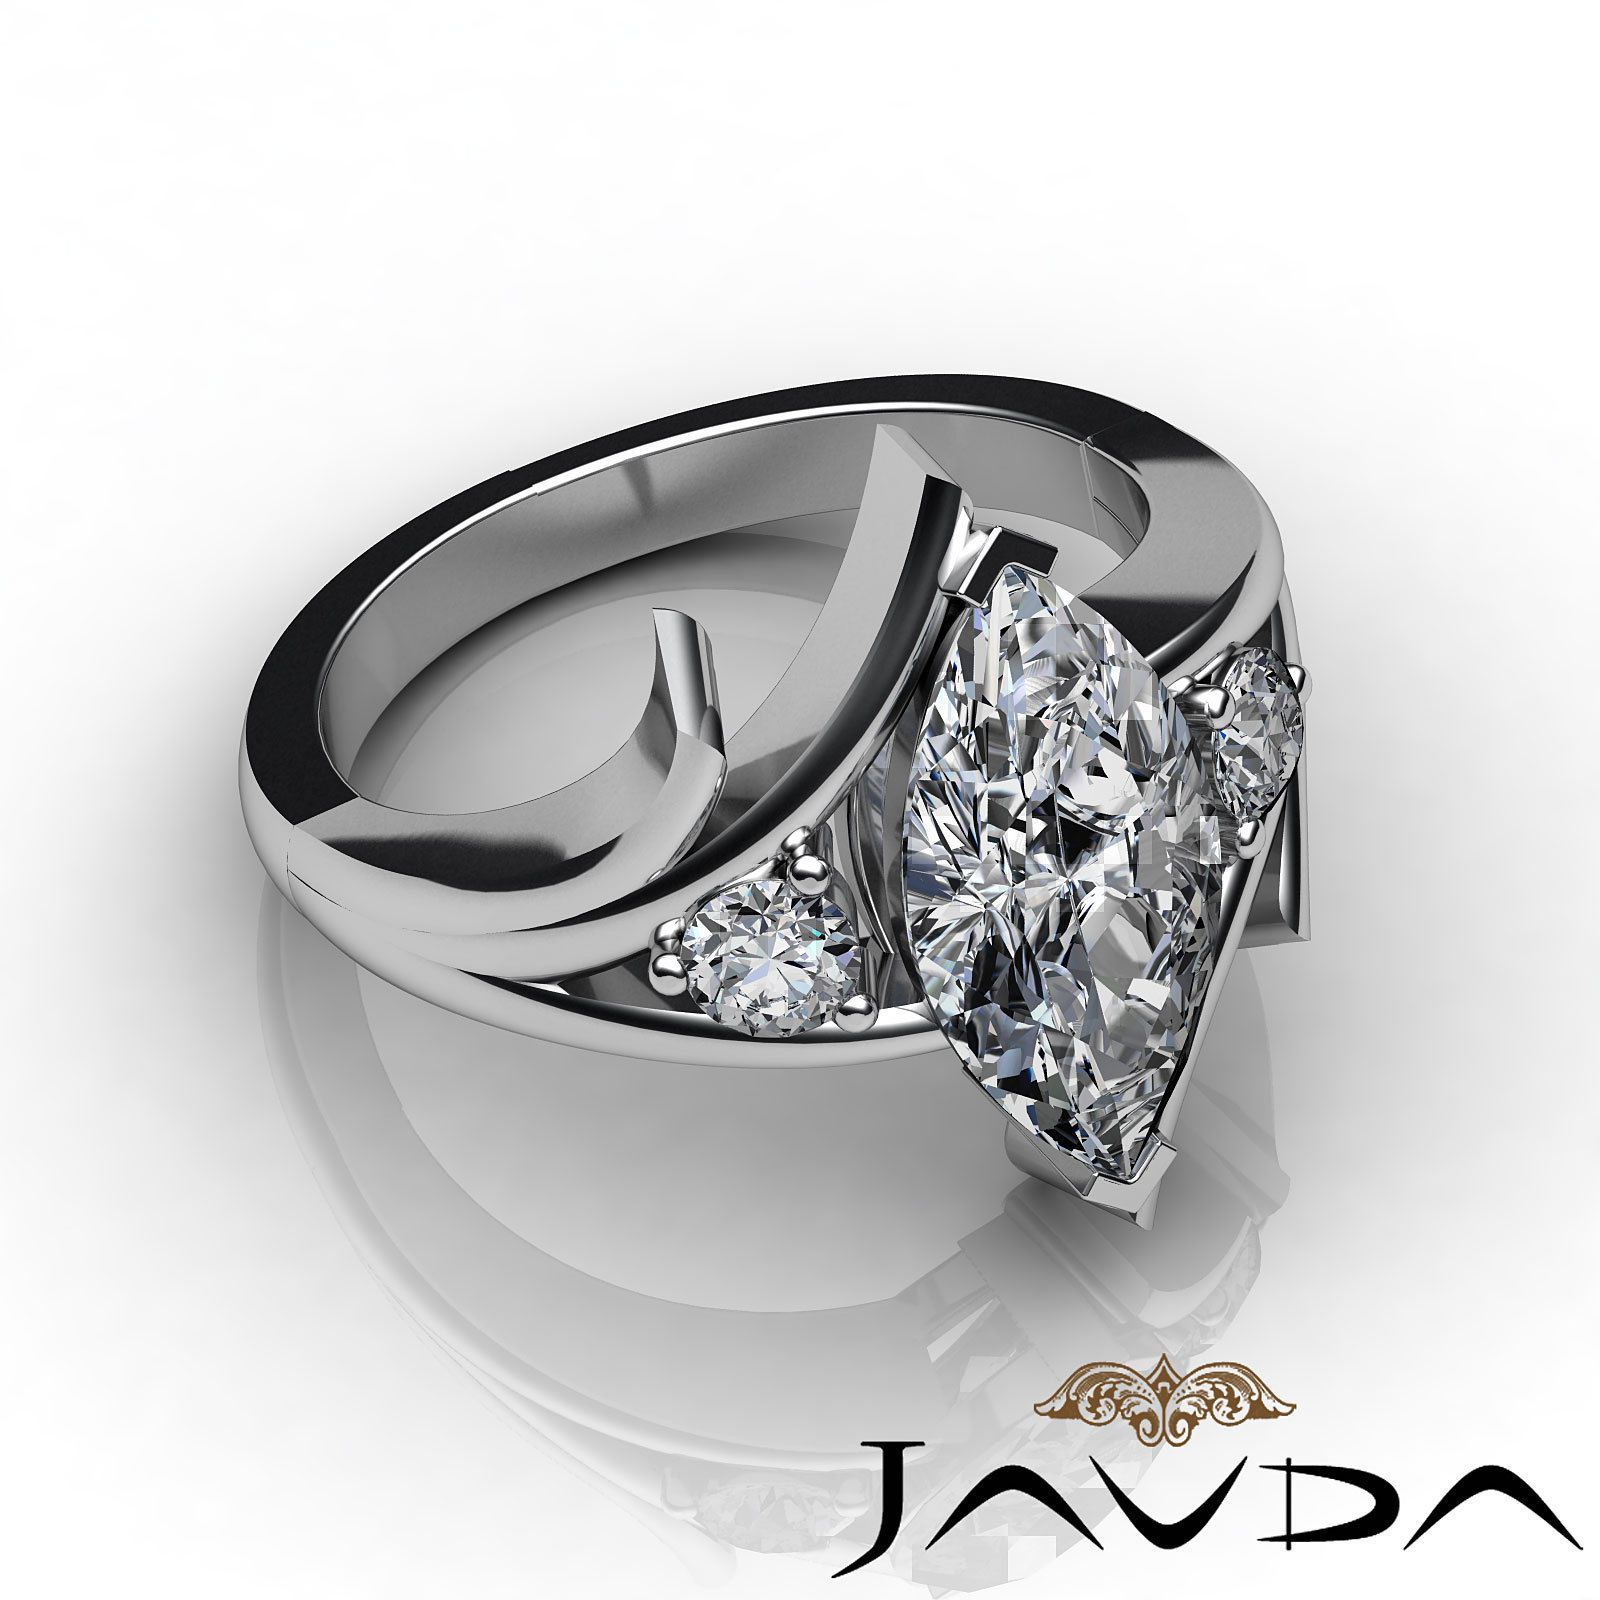 Pin On Javda Engagement Designs